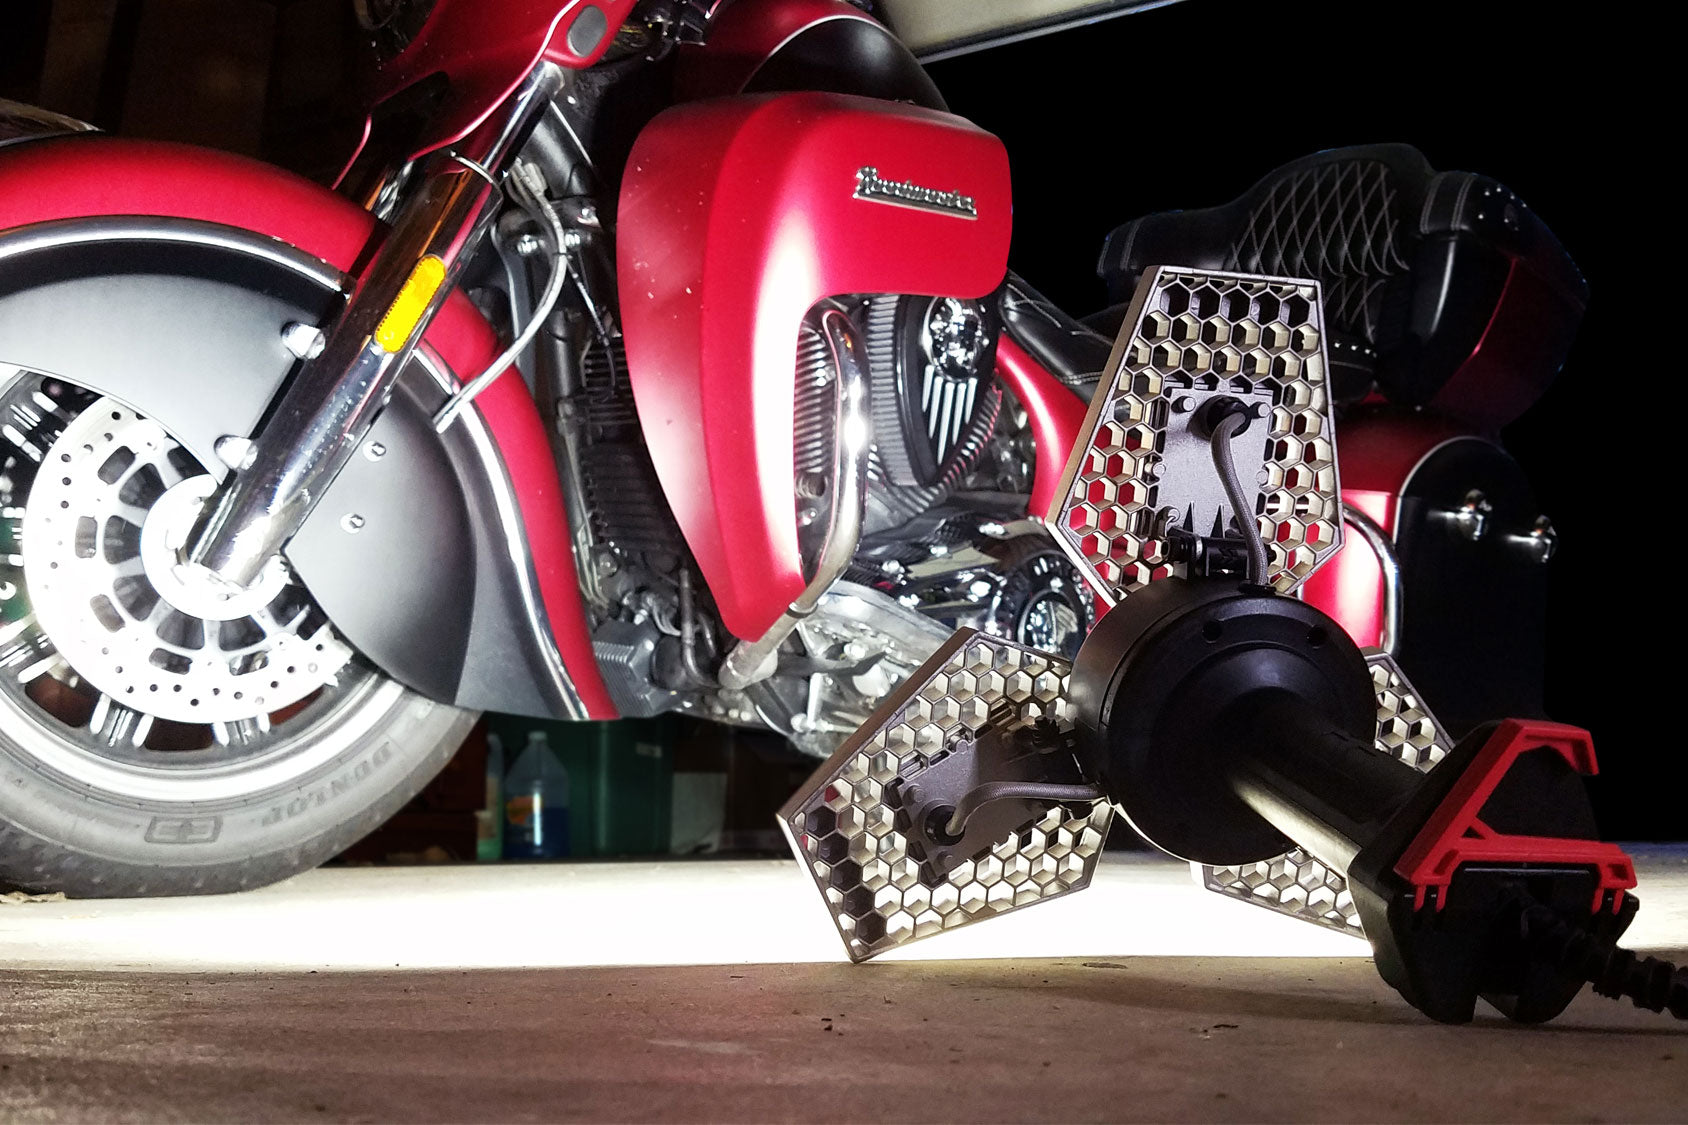 STKR Concepts TRiLIGHT ShopLight lighting up motorcycle